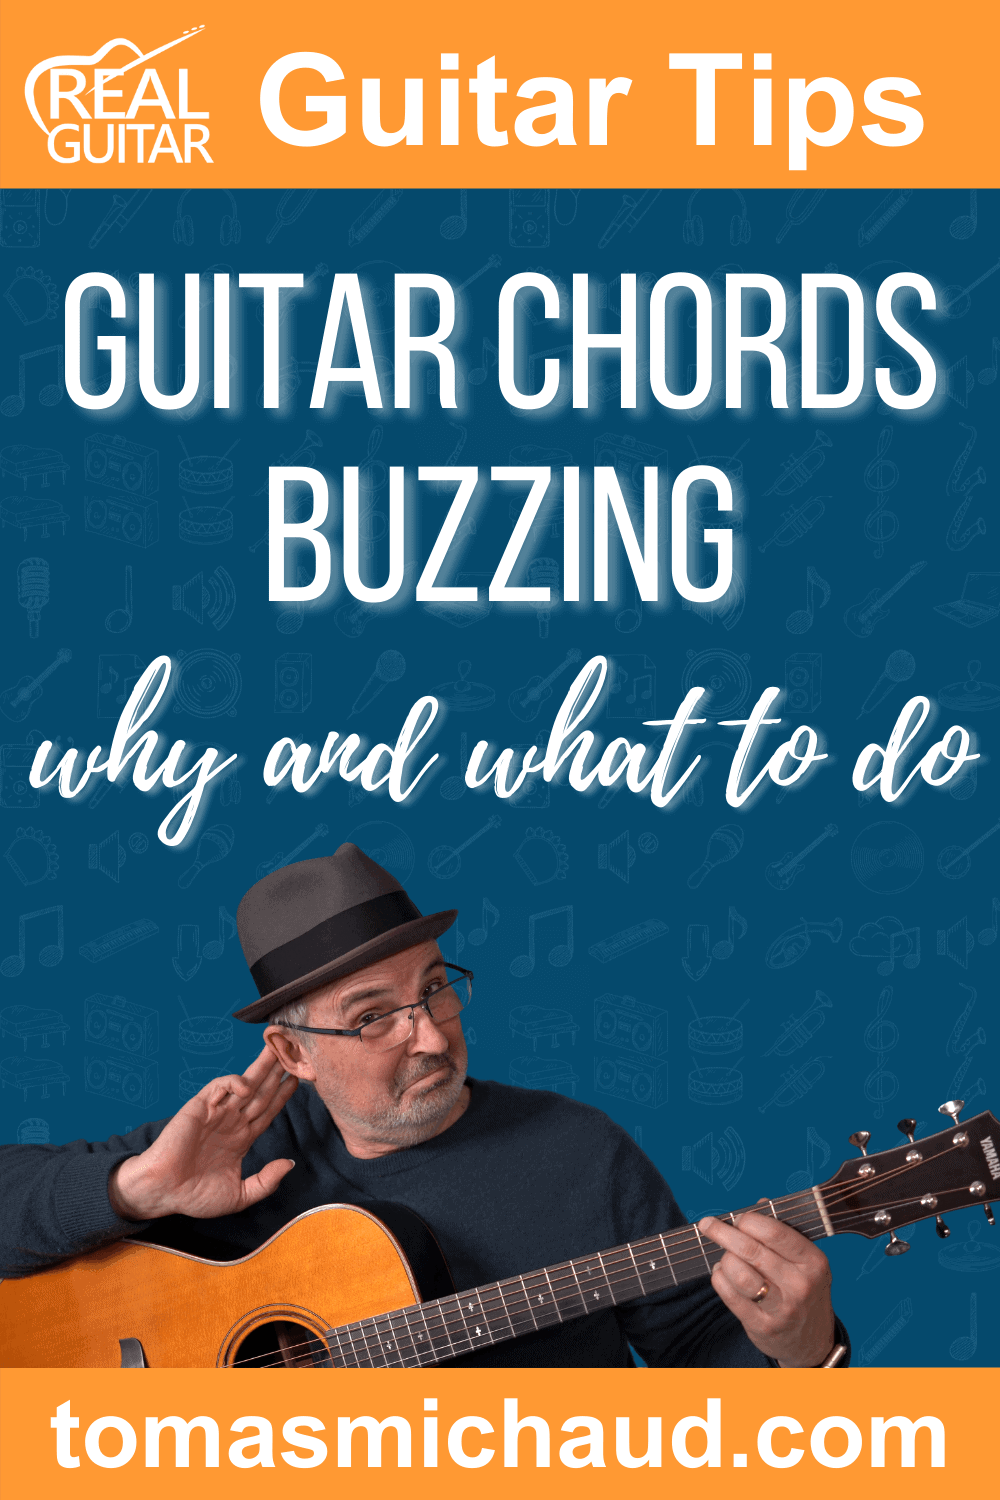 Guitar Chords Buzzing... why and what to do